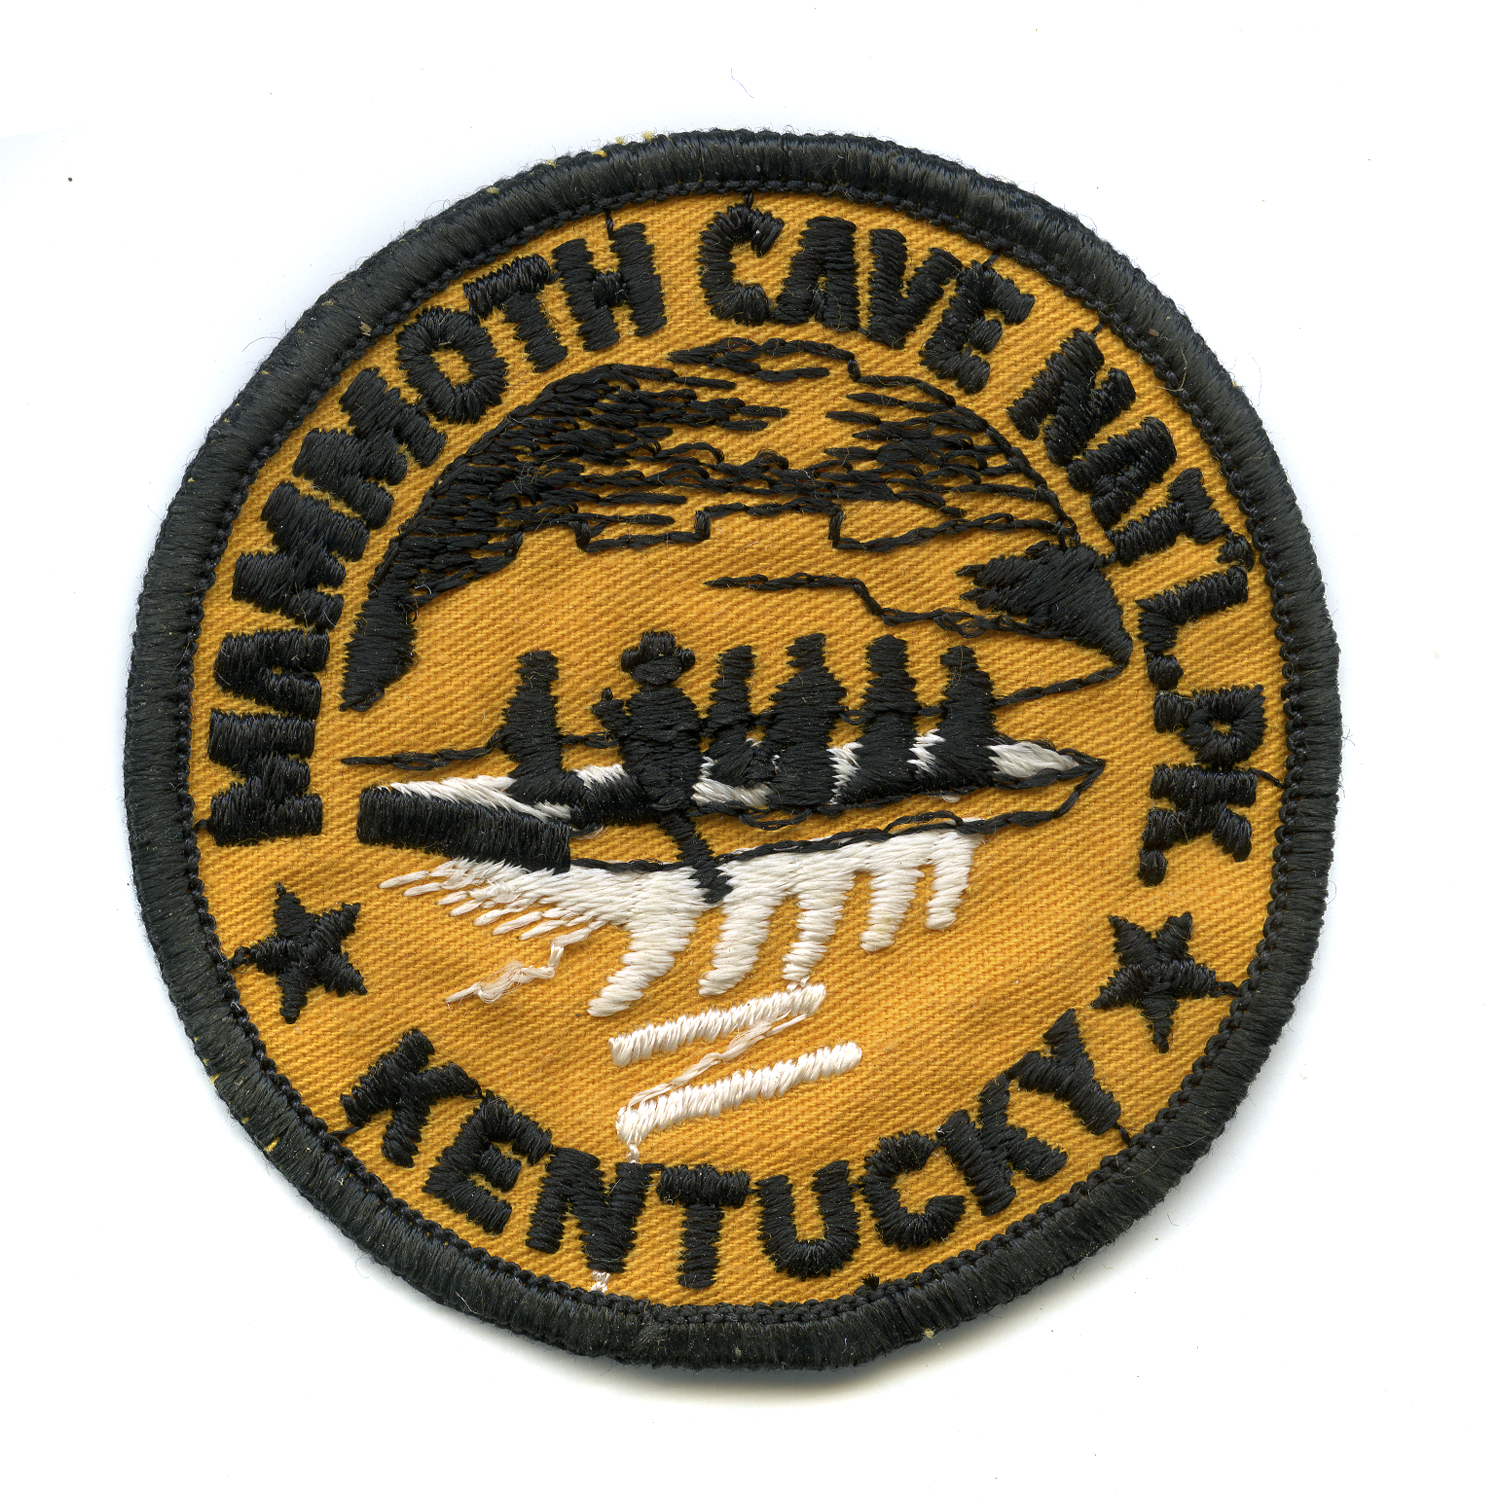 nps_patch_project_mammoth_cave_national_park_service_patch_1.jpg